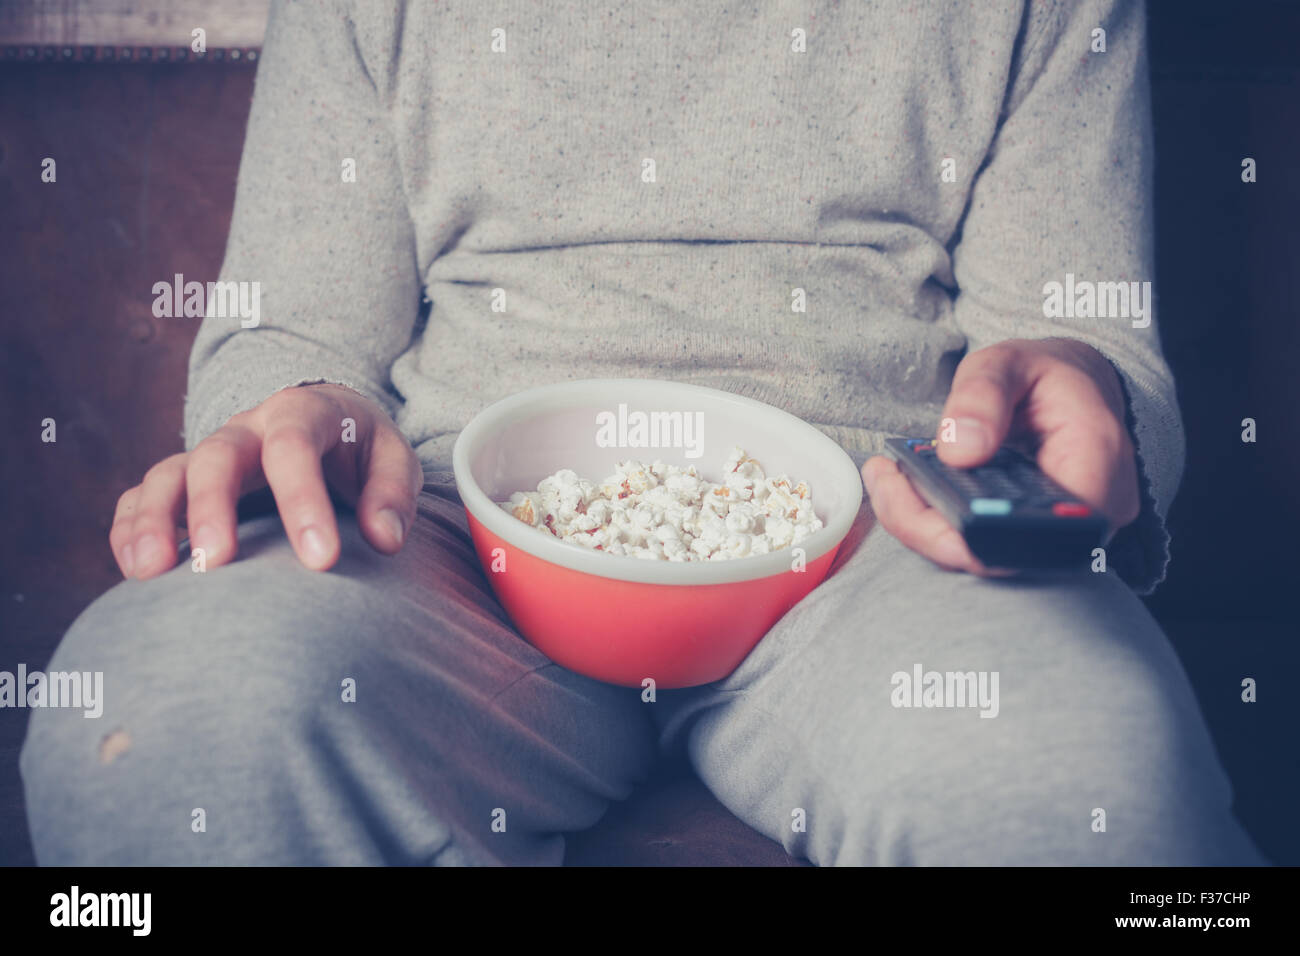 Young man is sitting on a sofa and eating popcorn while watching television - Stock Image